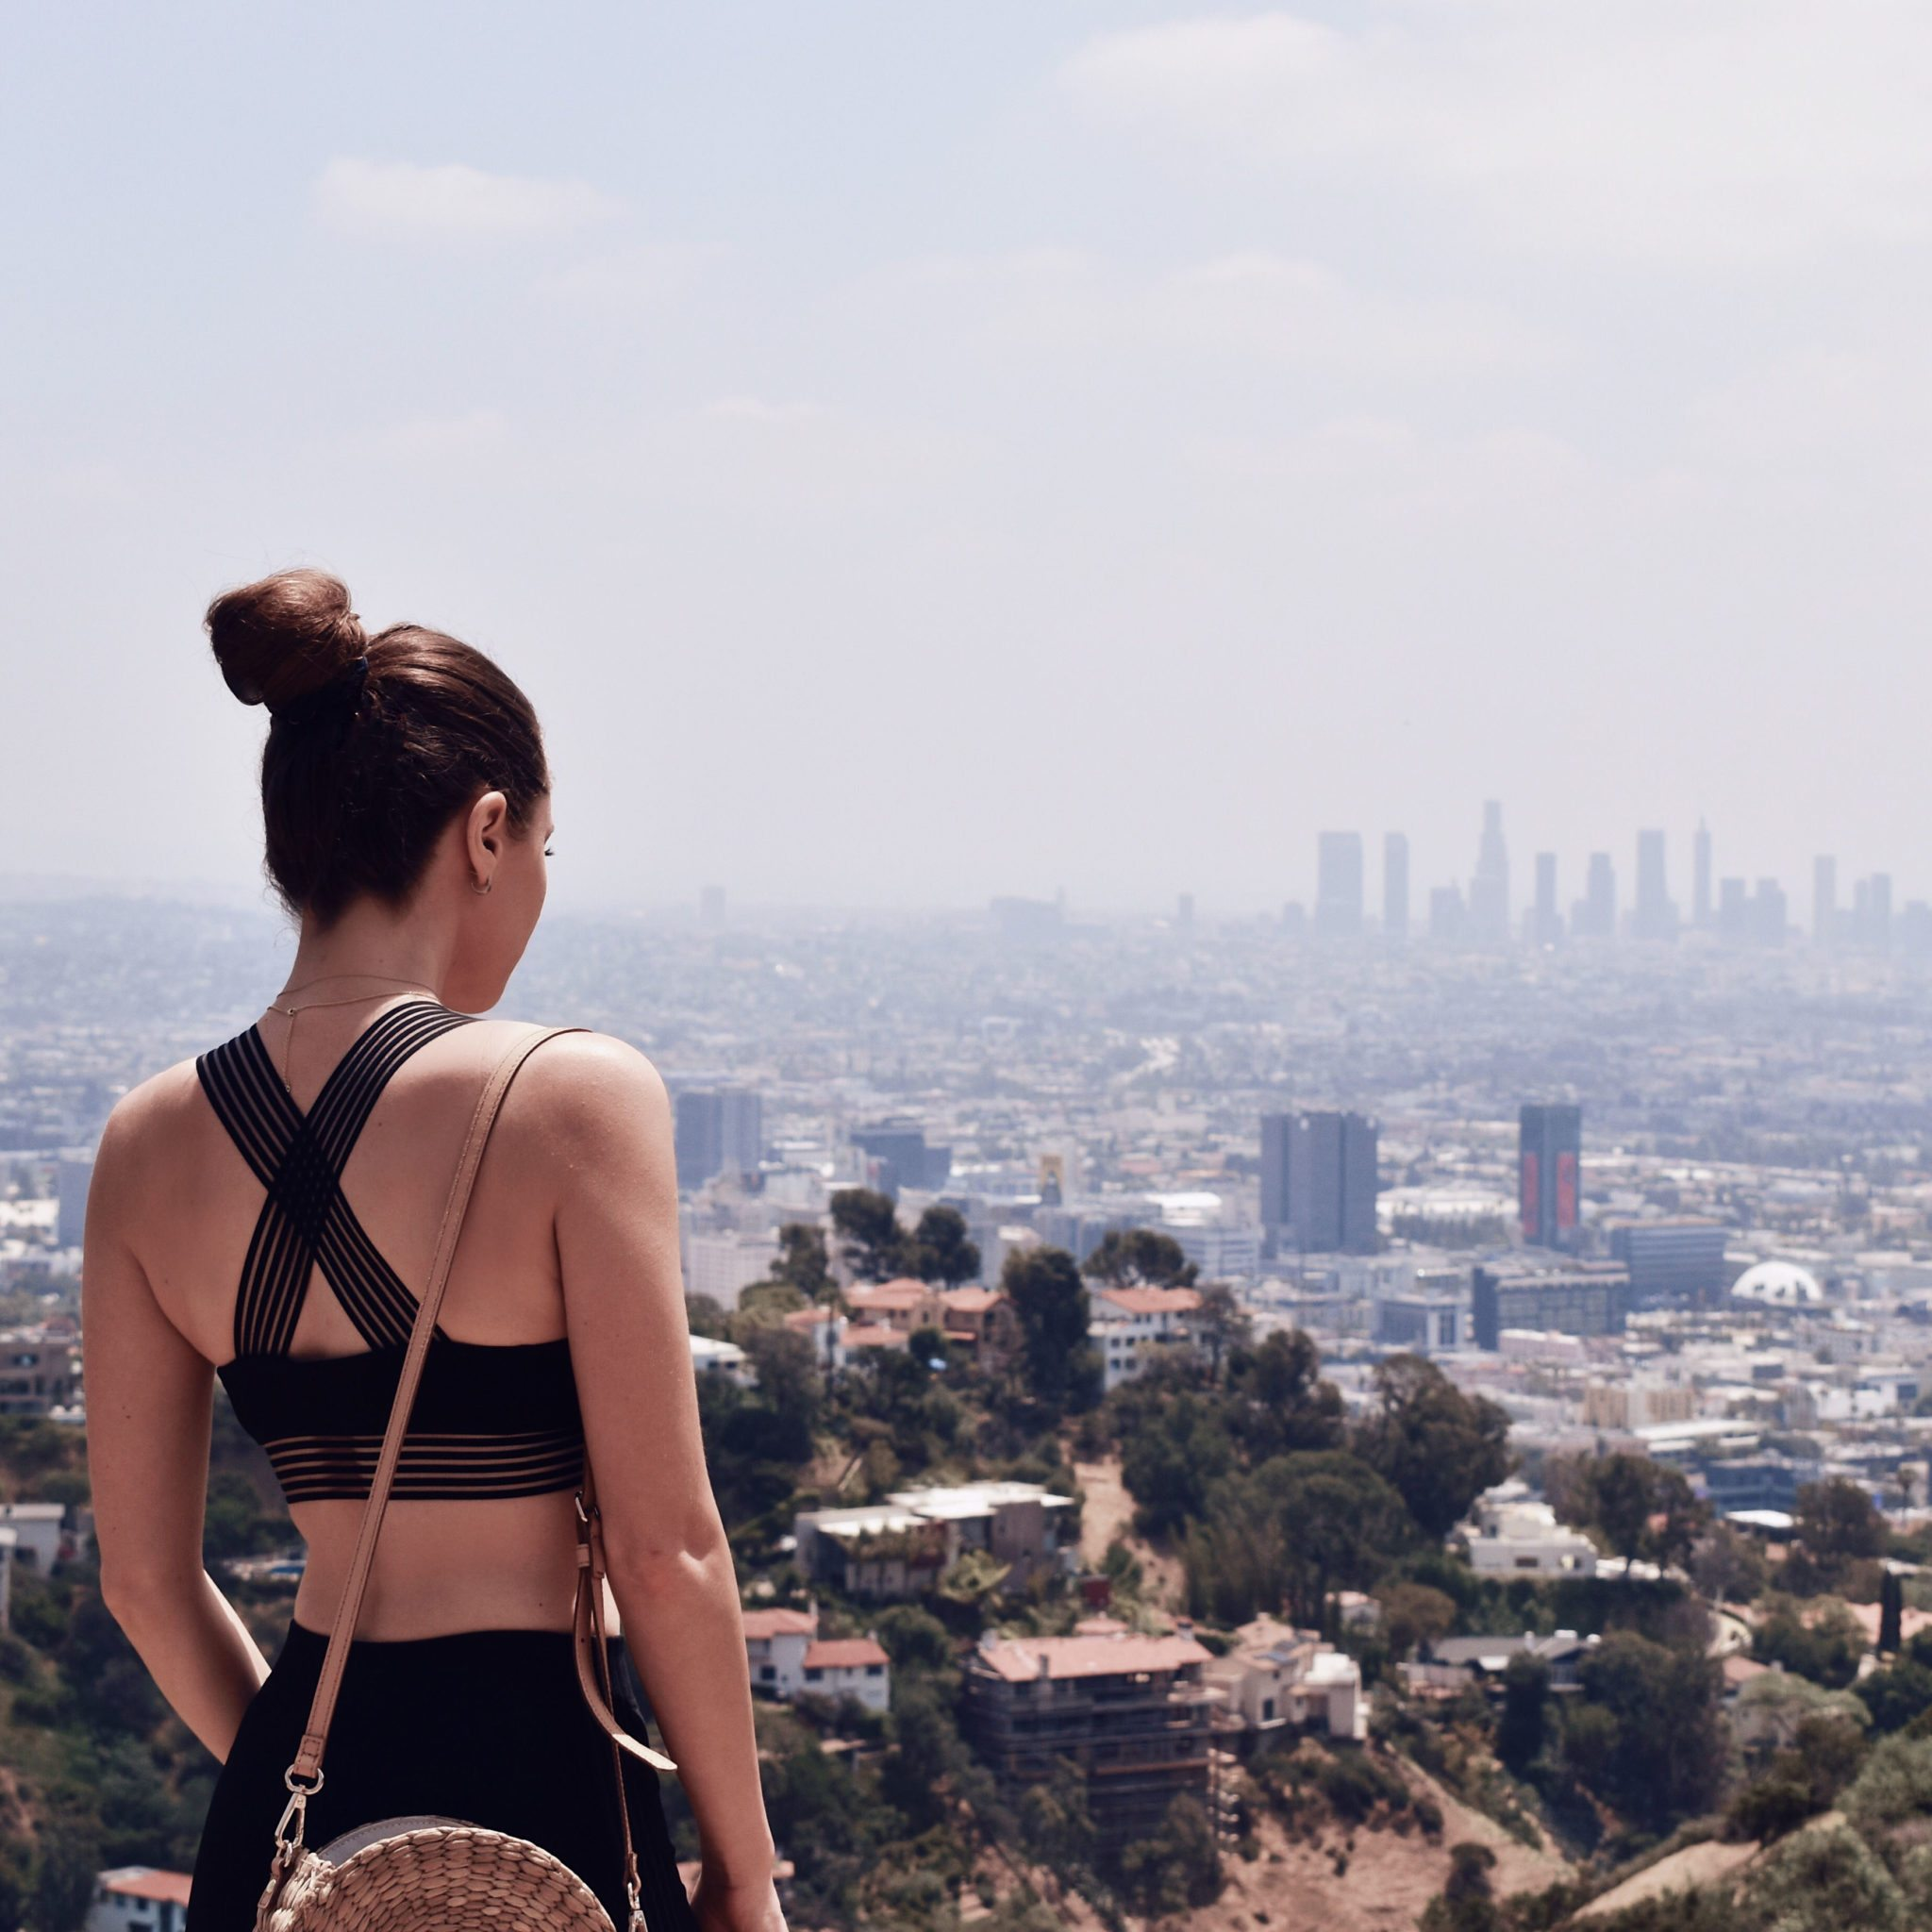 Fashion Diaries: Revolve Around The World Parties in Los Angeles - Lovewave sport bra and black leggings worn by Fashion Blogger Julia Comil. More on Houseofcomil.com. Pin to read it later. Location Runyon Canyon Los Angeles - Active wear outfit